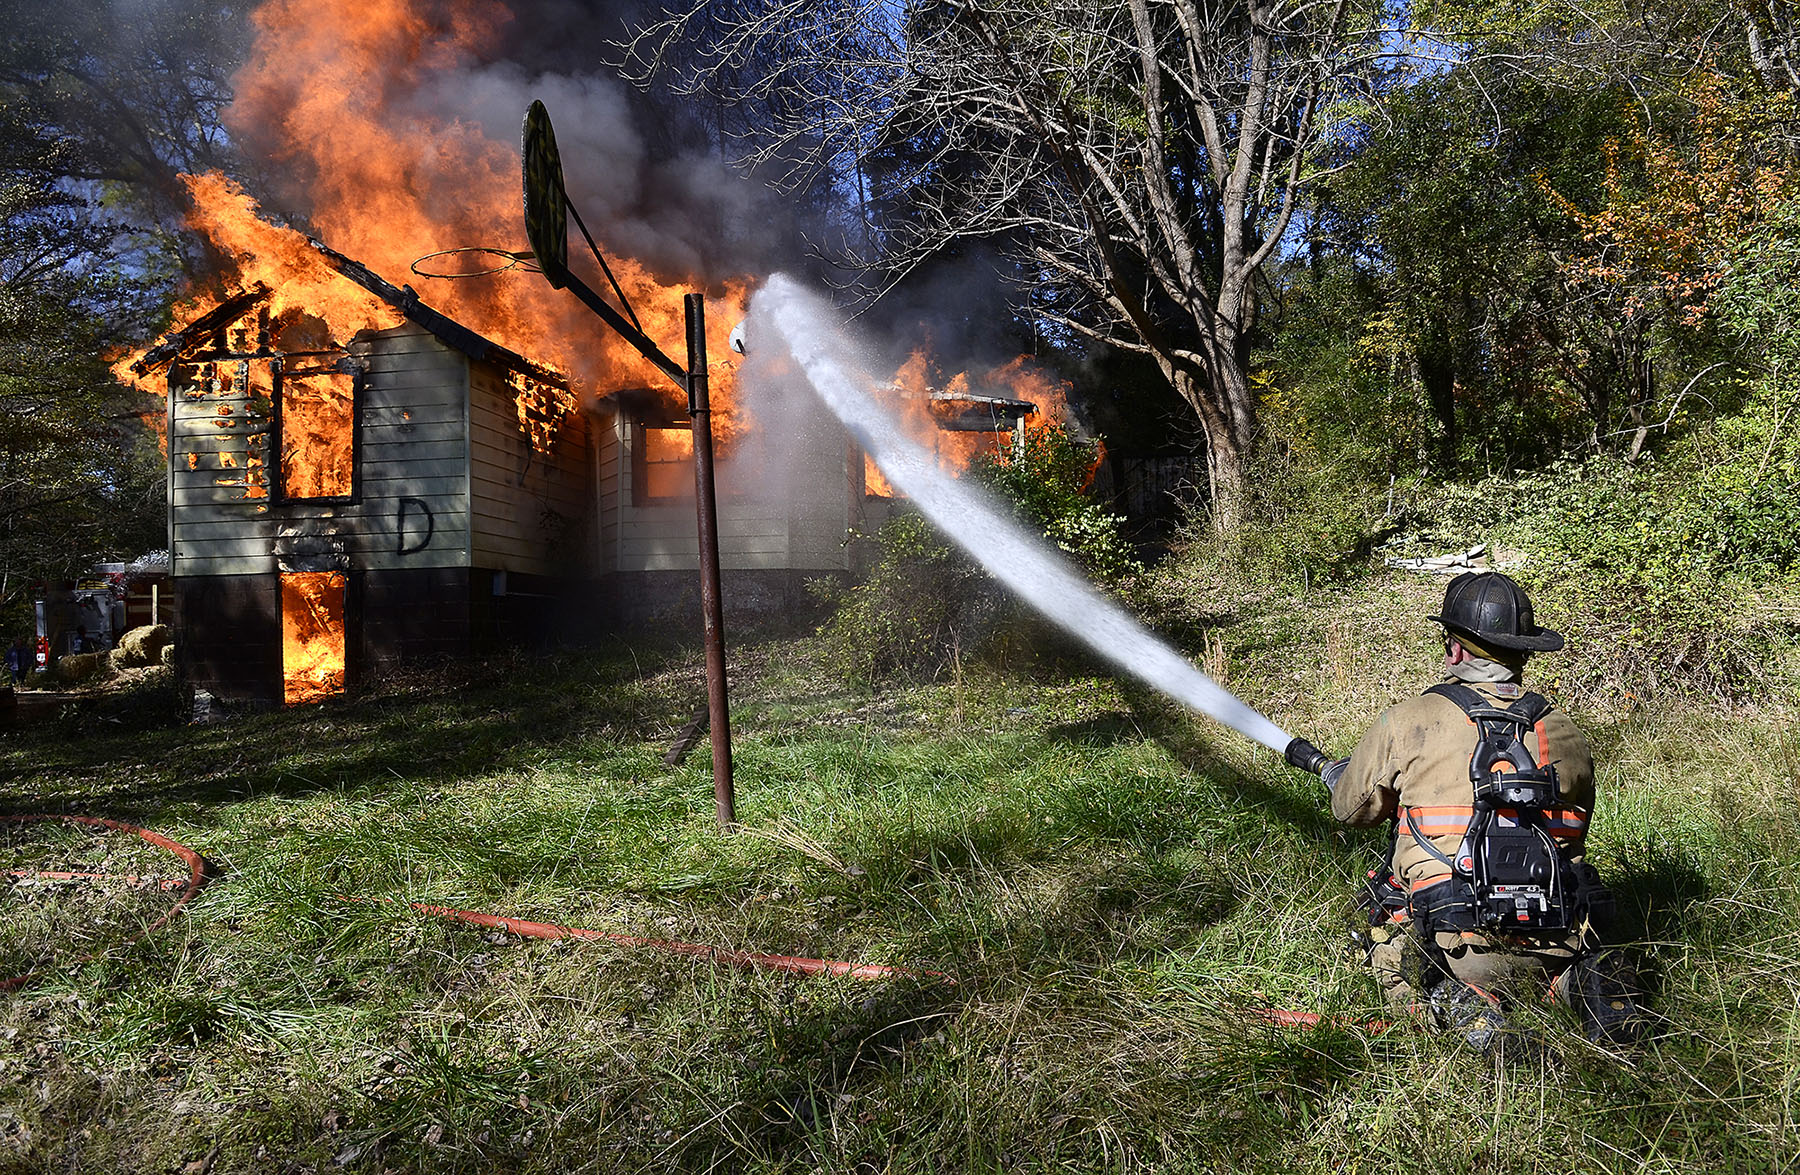 Honorable Mention I General NewsJohn D. Simmons, The Charlotte ObserverBilly Lee, a firefighter with East Gaston VFD, cools down the brush around a practice burn in Mount Holly Saturday. The Mount Holly Fire Department began a practice burn at  8:30 AM  Saturday Nov. 21, 2015 at 114 Price Street. 25 firefighters from Mount Holly, East Gaston VFD and Lucia-Riverbend VFD took part in the training exercise. Mount Holly will conduct a night time practice burn in December at 808 N. Charlotte St.